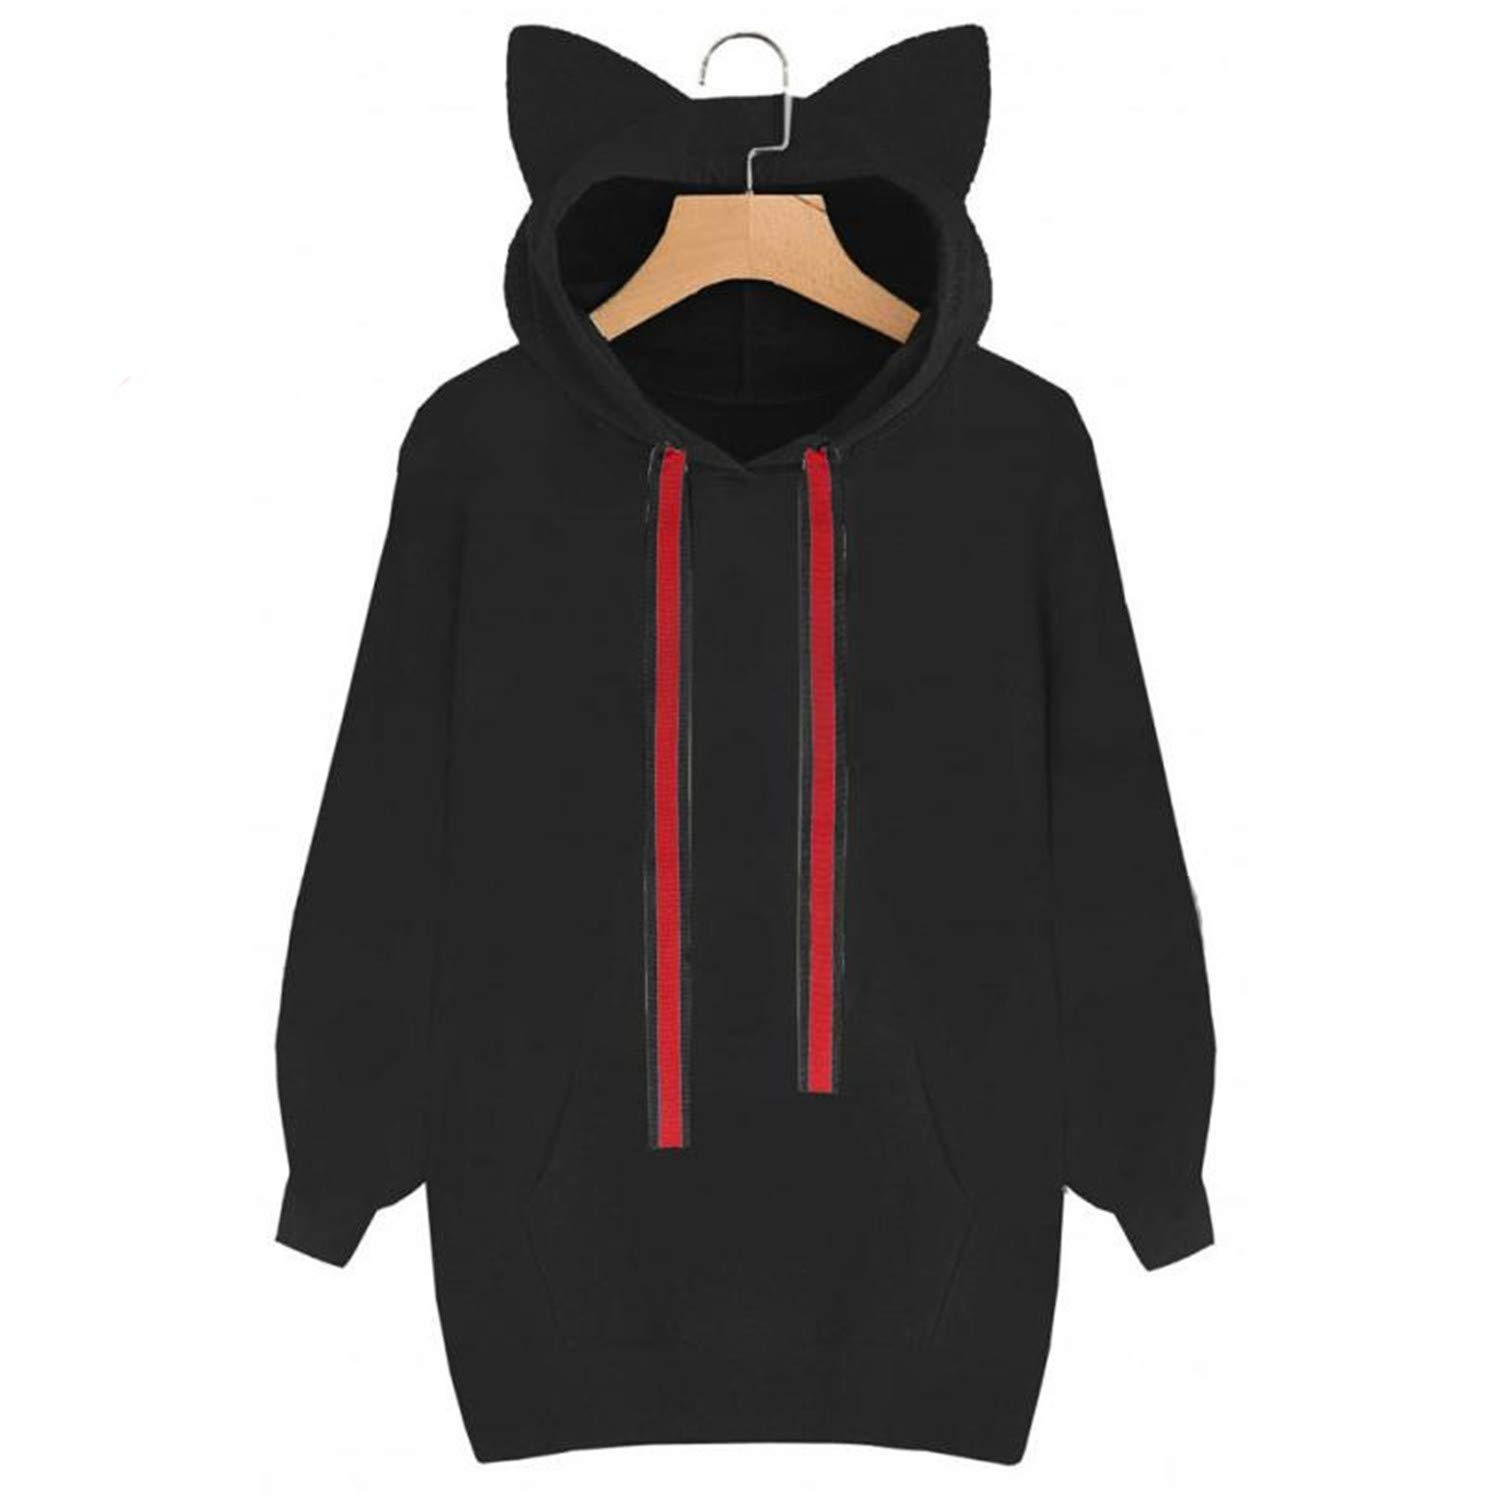 Womens Long Sweatshirts Cat Long Sleeve Hoodie Sweatshirt Hooded Pullover Tops